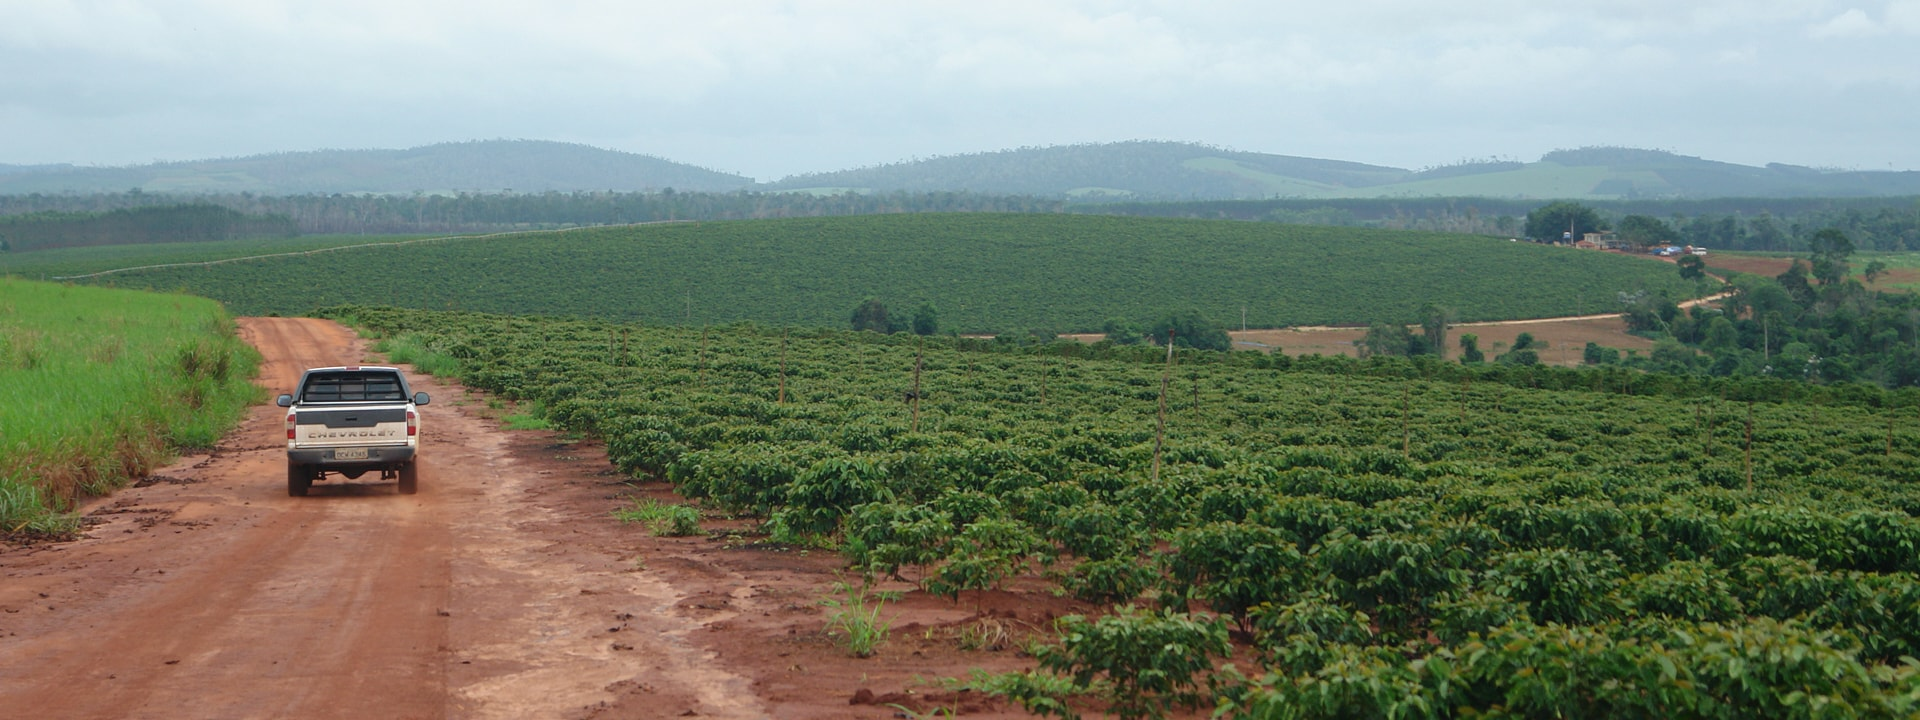 Coffee plantations in Jaguare, Espirito Santo state in Brazil